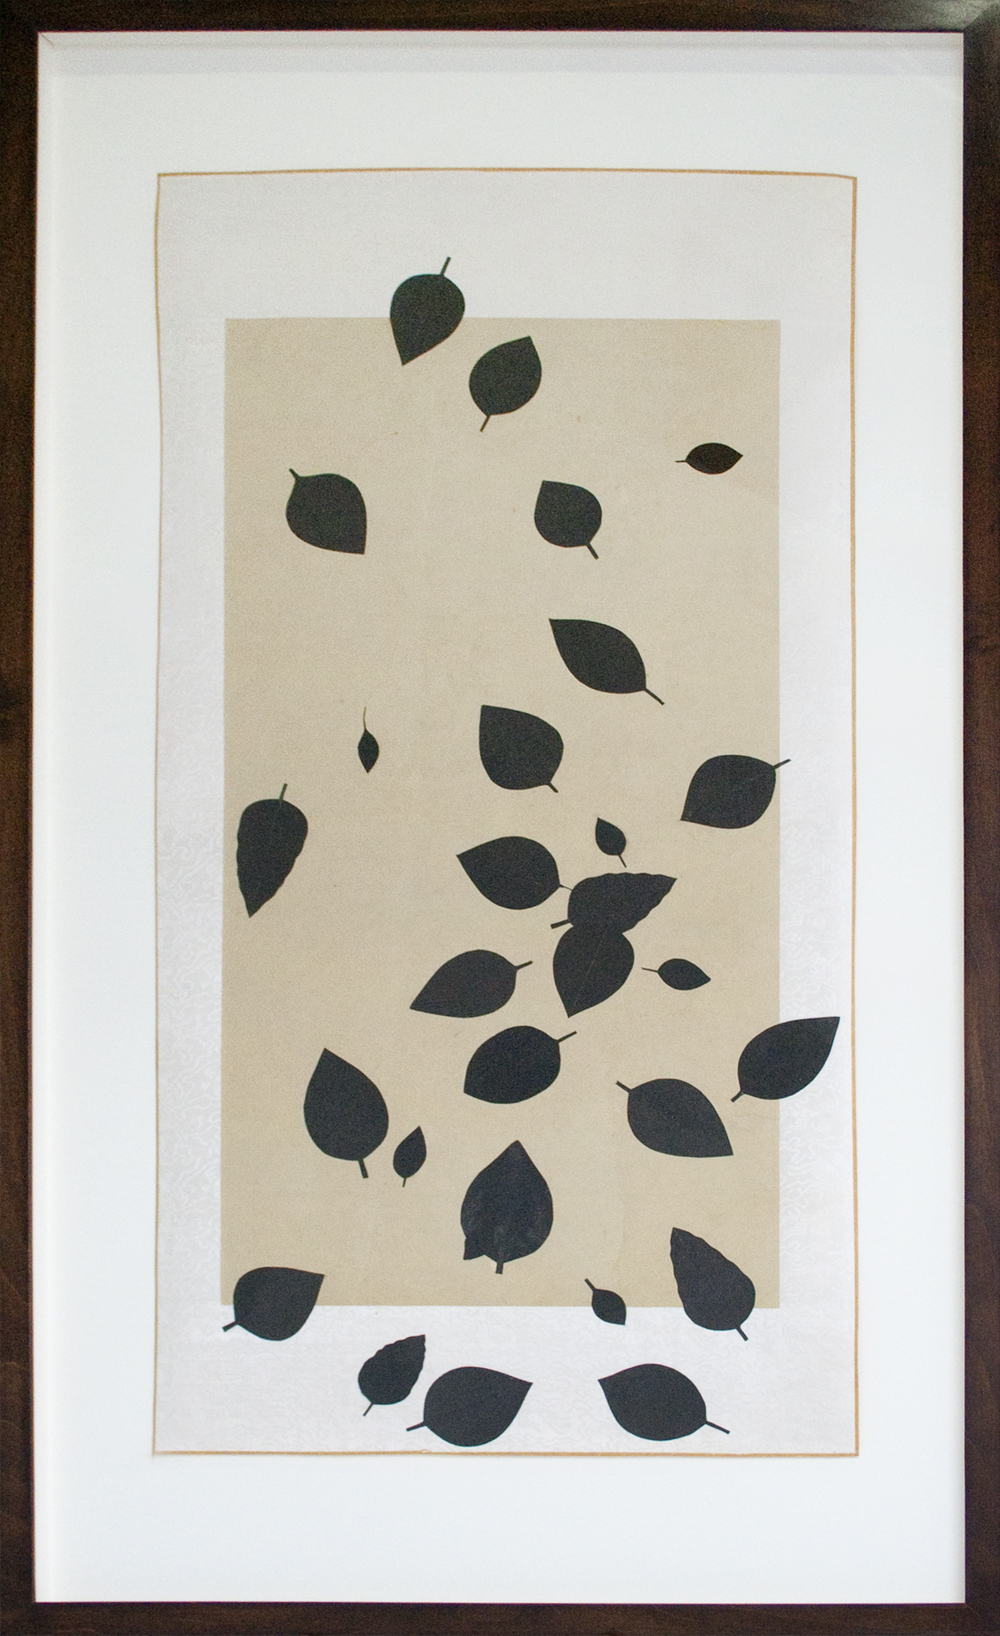 Bruce Conner (Anonymous) WIND BLOWN LEAVES 2001 ink and paper on cloth and paper scroll 34 1/4 x 17 1/2 inches